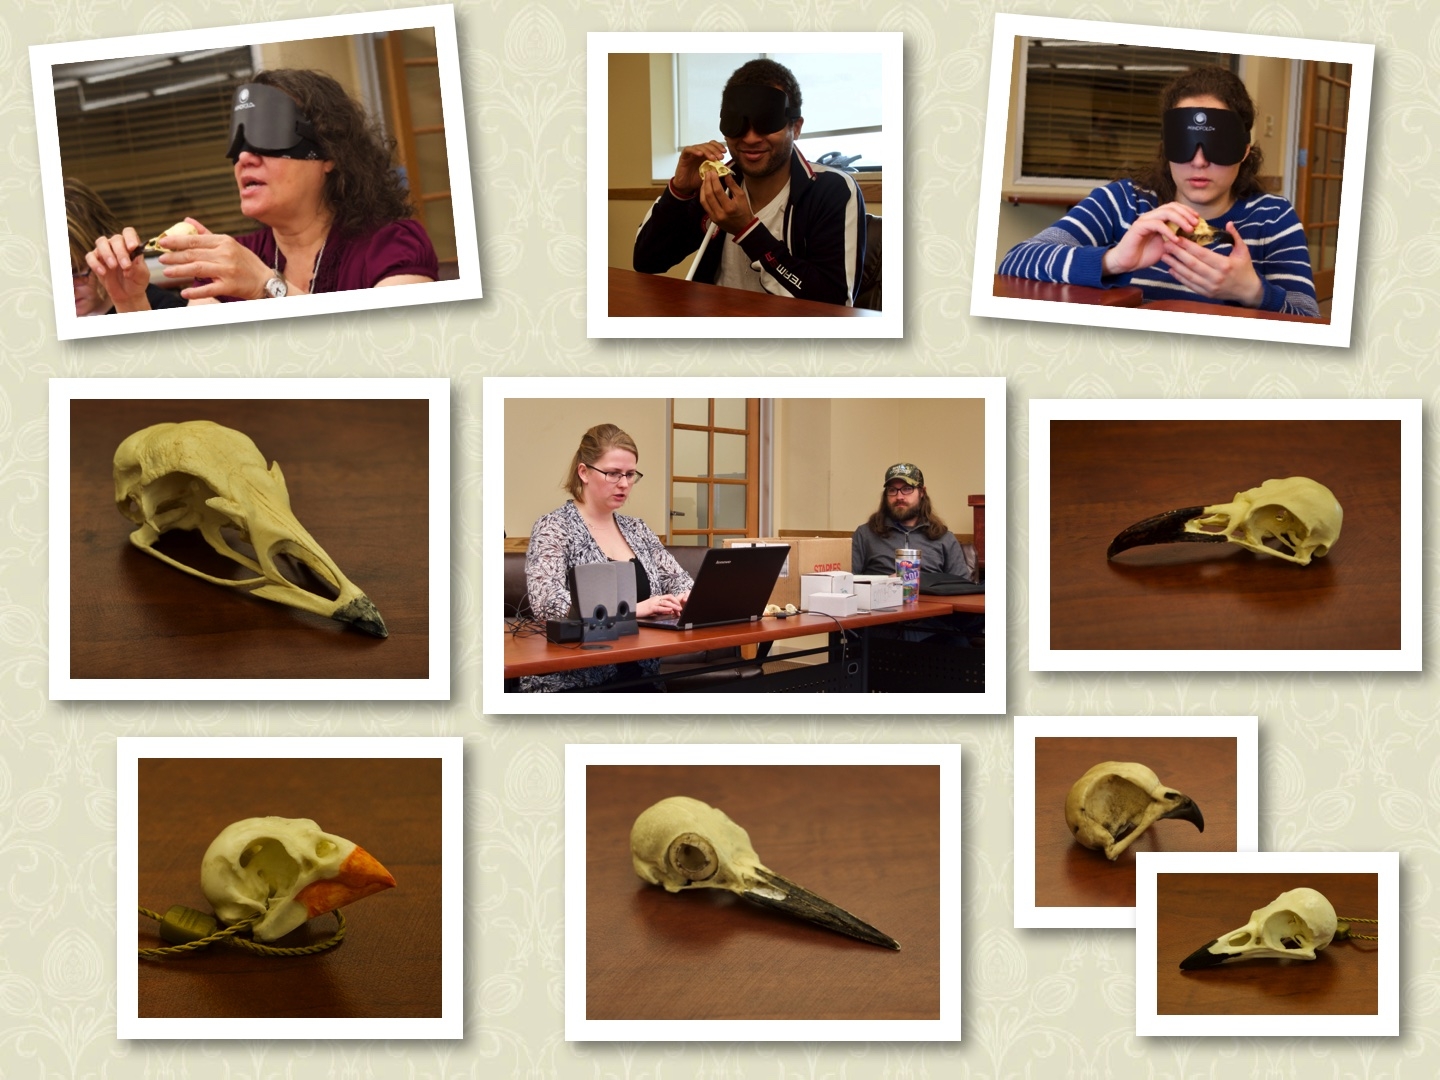 Top row: Blanca, Chaz and CC looking at skulls, Center row: Eagle skull, Allie and Tyler playing bird sounds on the computer, Raven skull, Bottom row: Cardinal skull, Northern Flicker skull, Turkey skull and Blue Jay skull